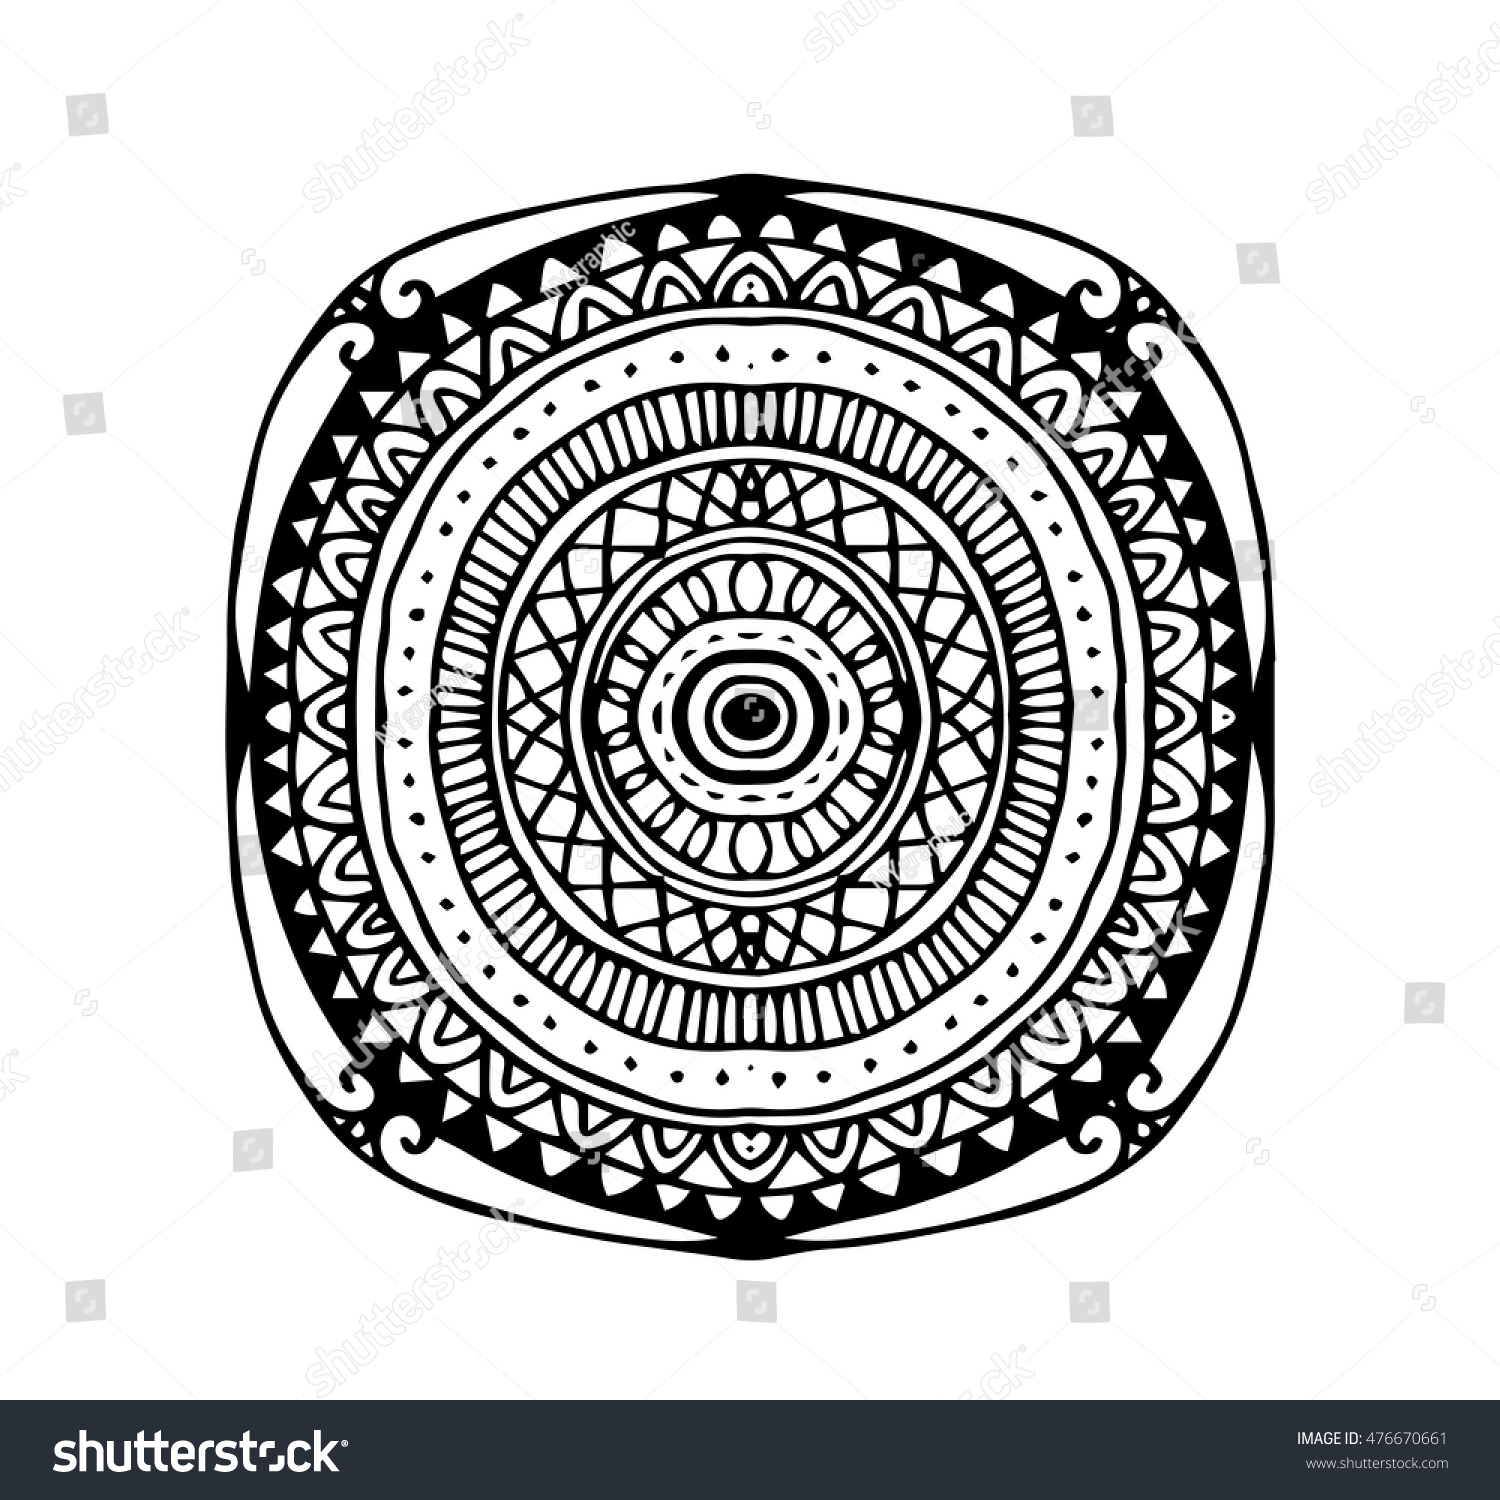 Vector Hand Draw Of Abstract Circle Doodle Flower Ornament In How To Draw  Zen Flowers Solution